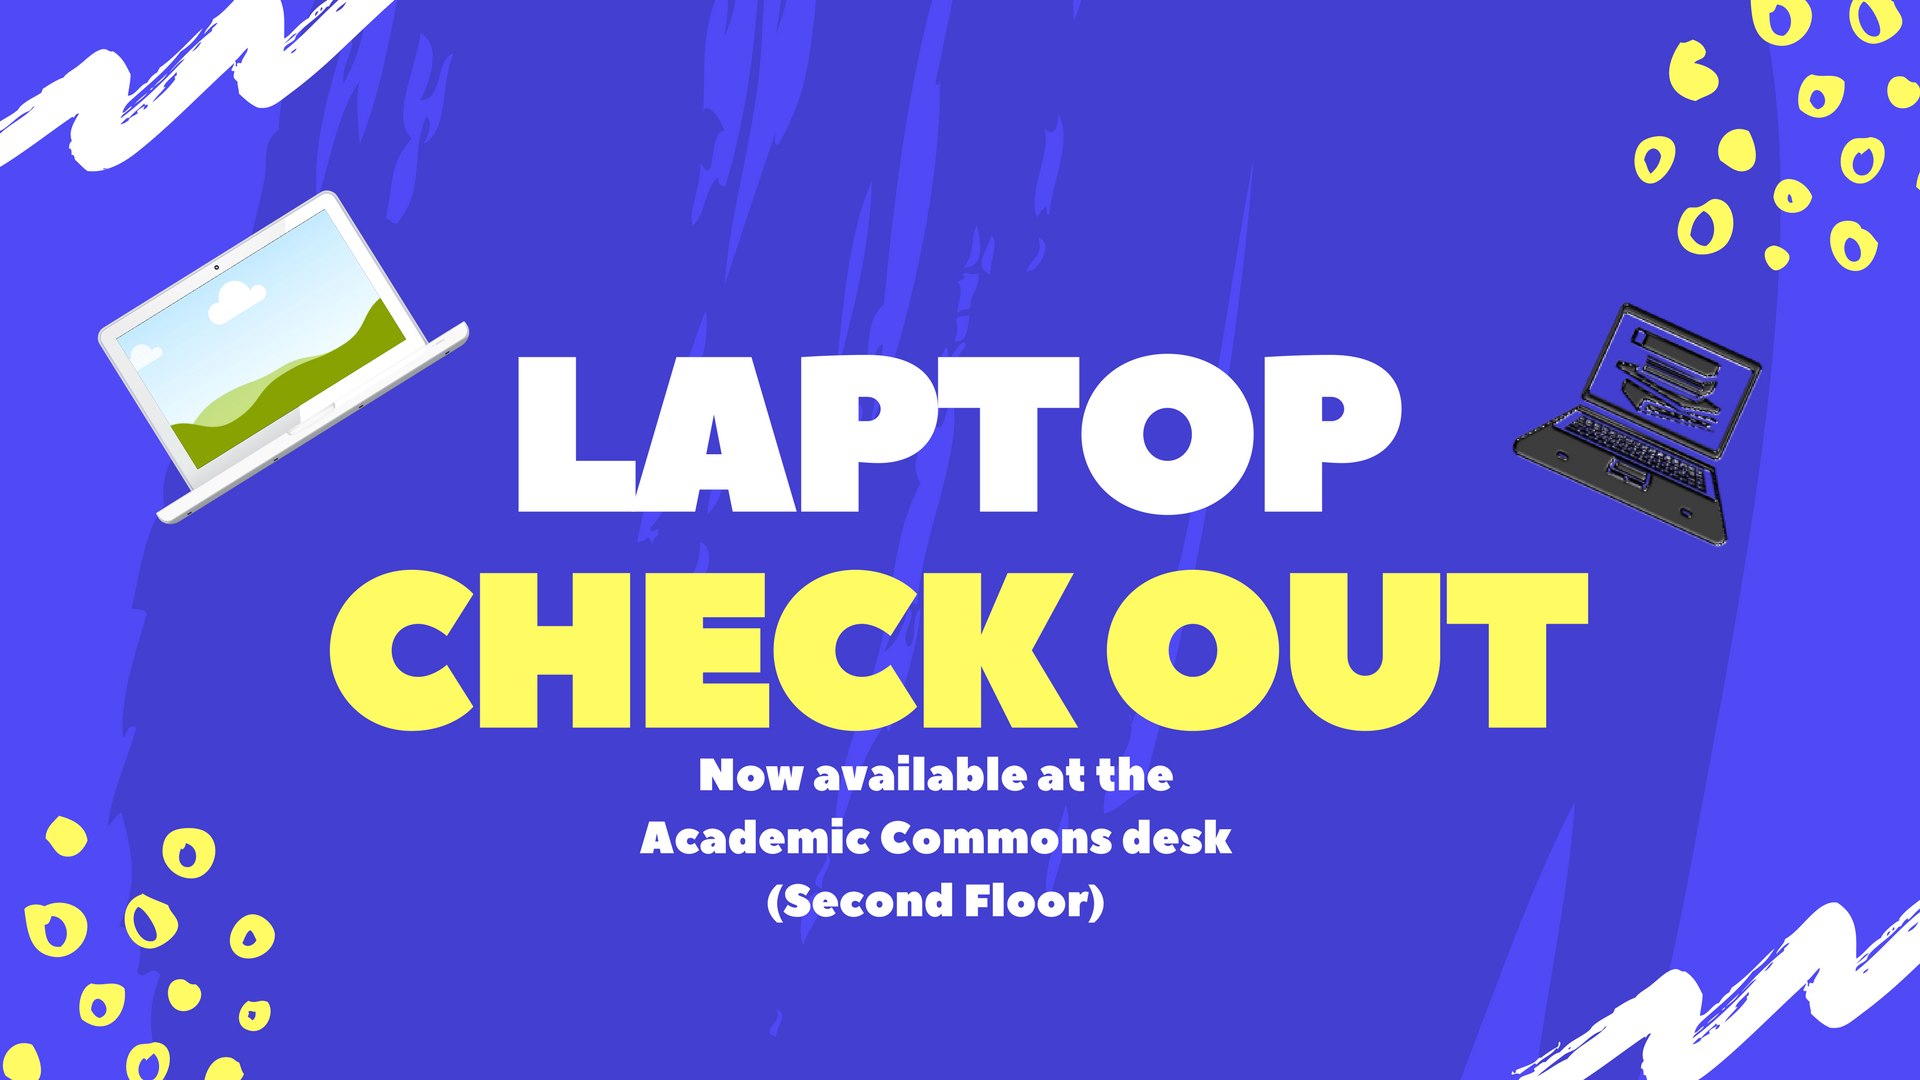 Laptop Checkout Flyer